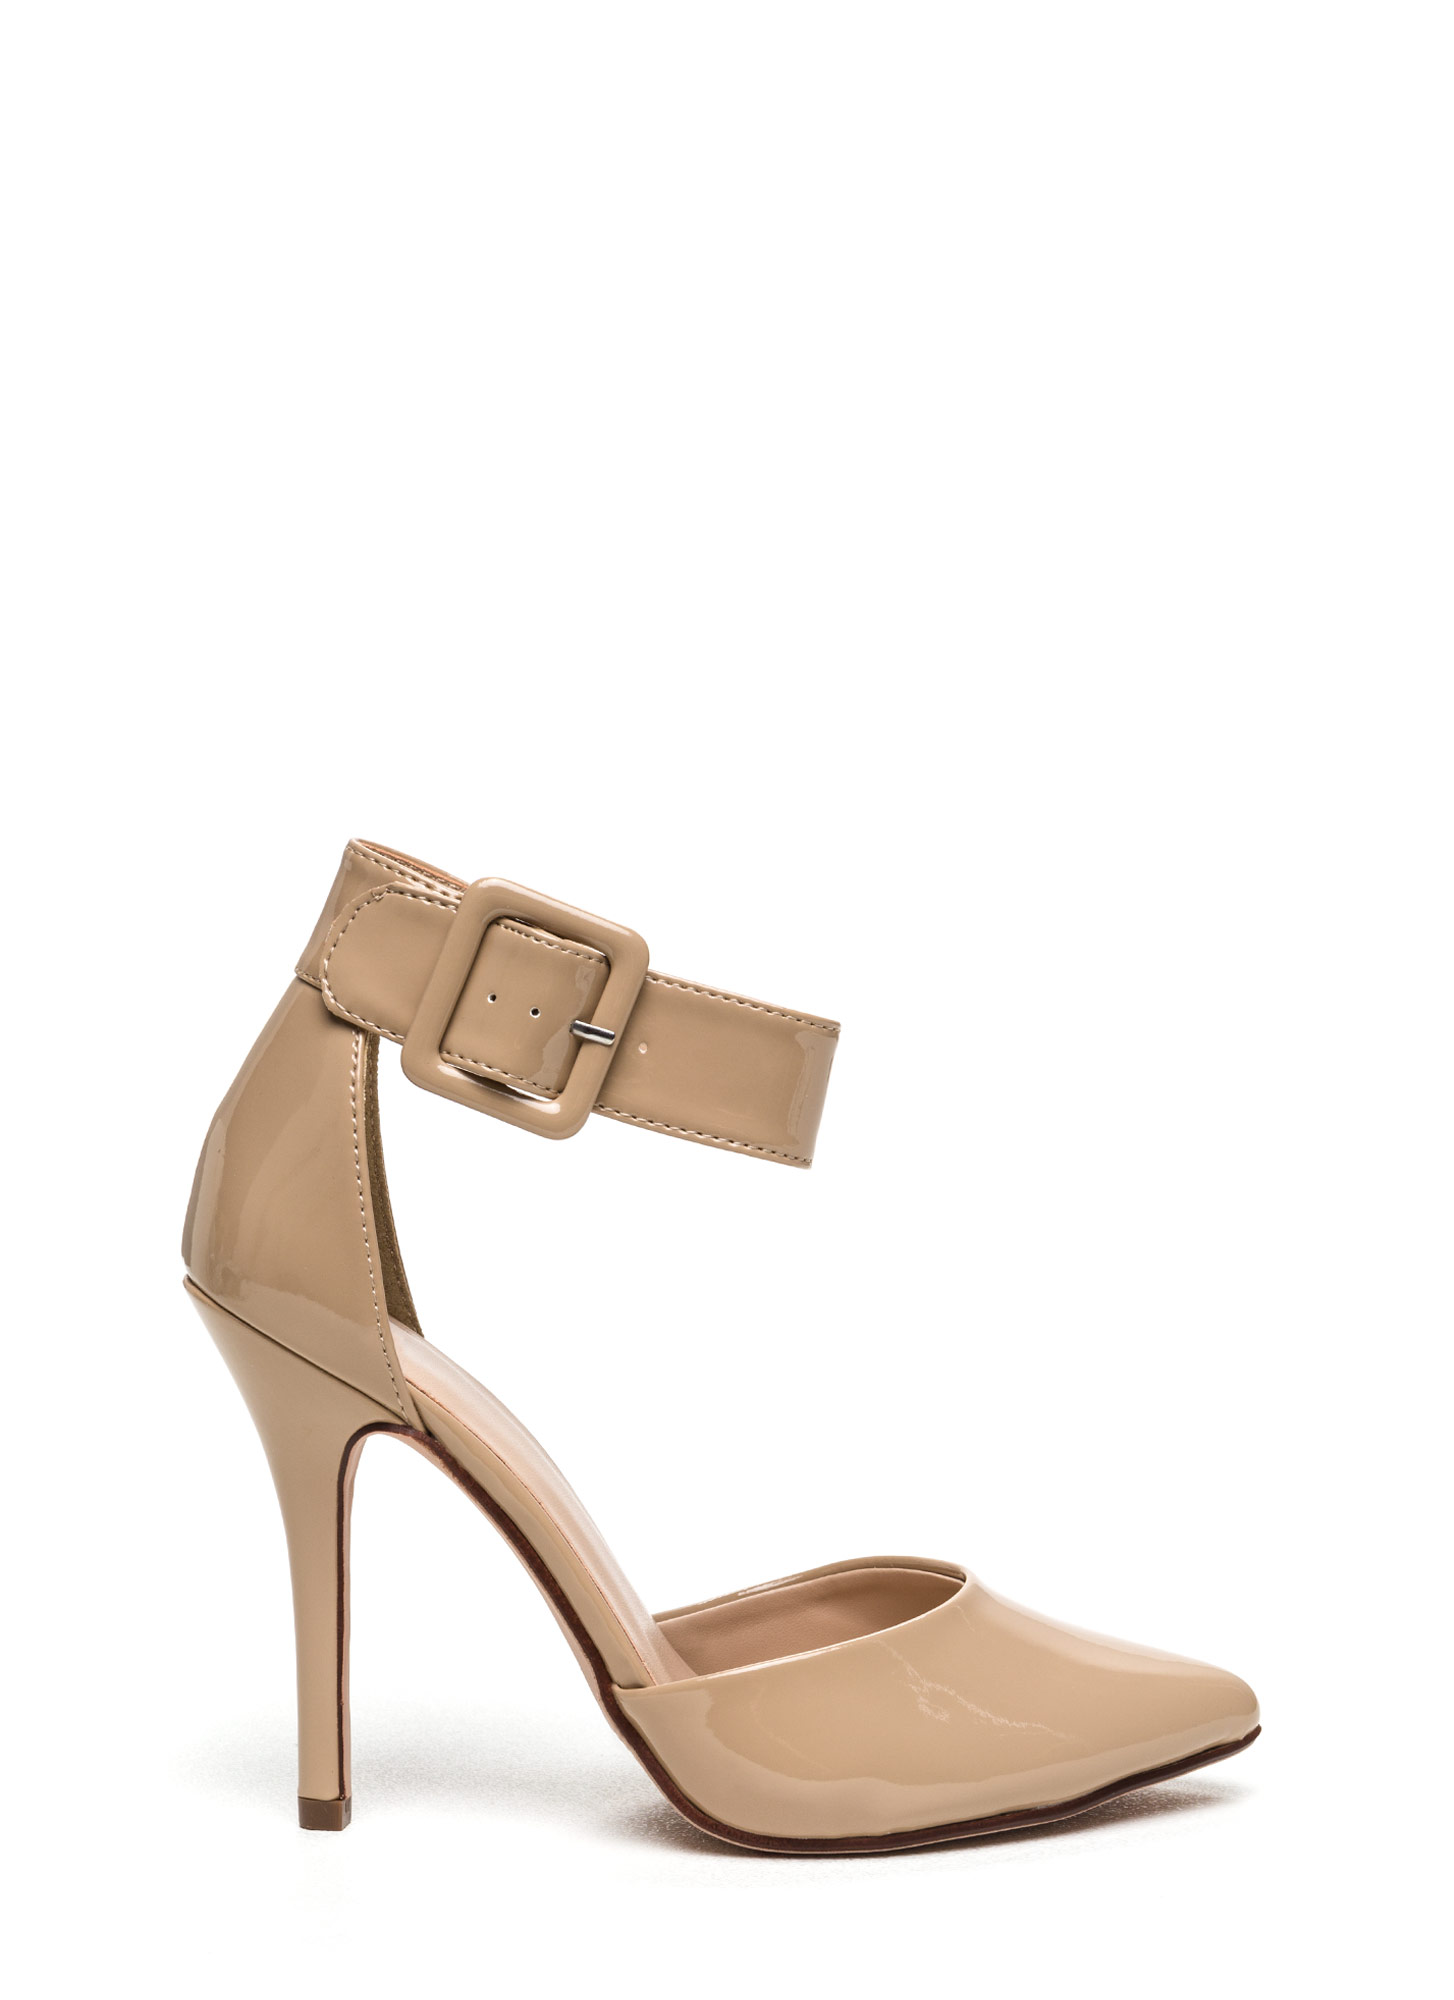 Buckle Up Pointy Toe Pumps DKBEIGE